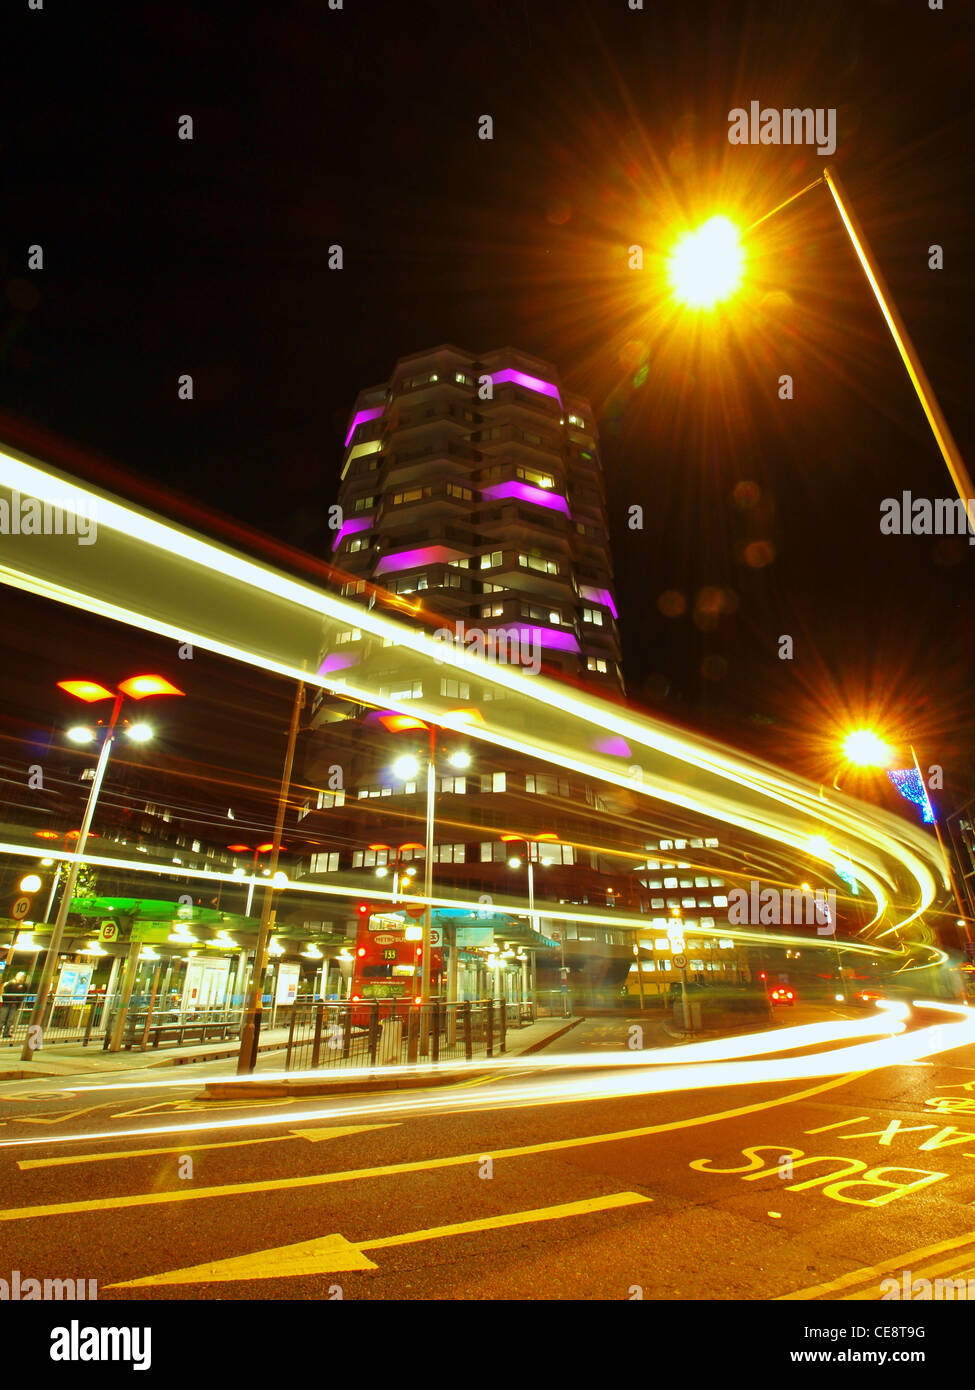 Light trails in front of the illuminated No.1 Croydon towerblock. - Stock Image